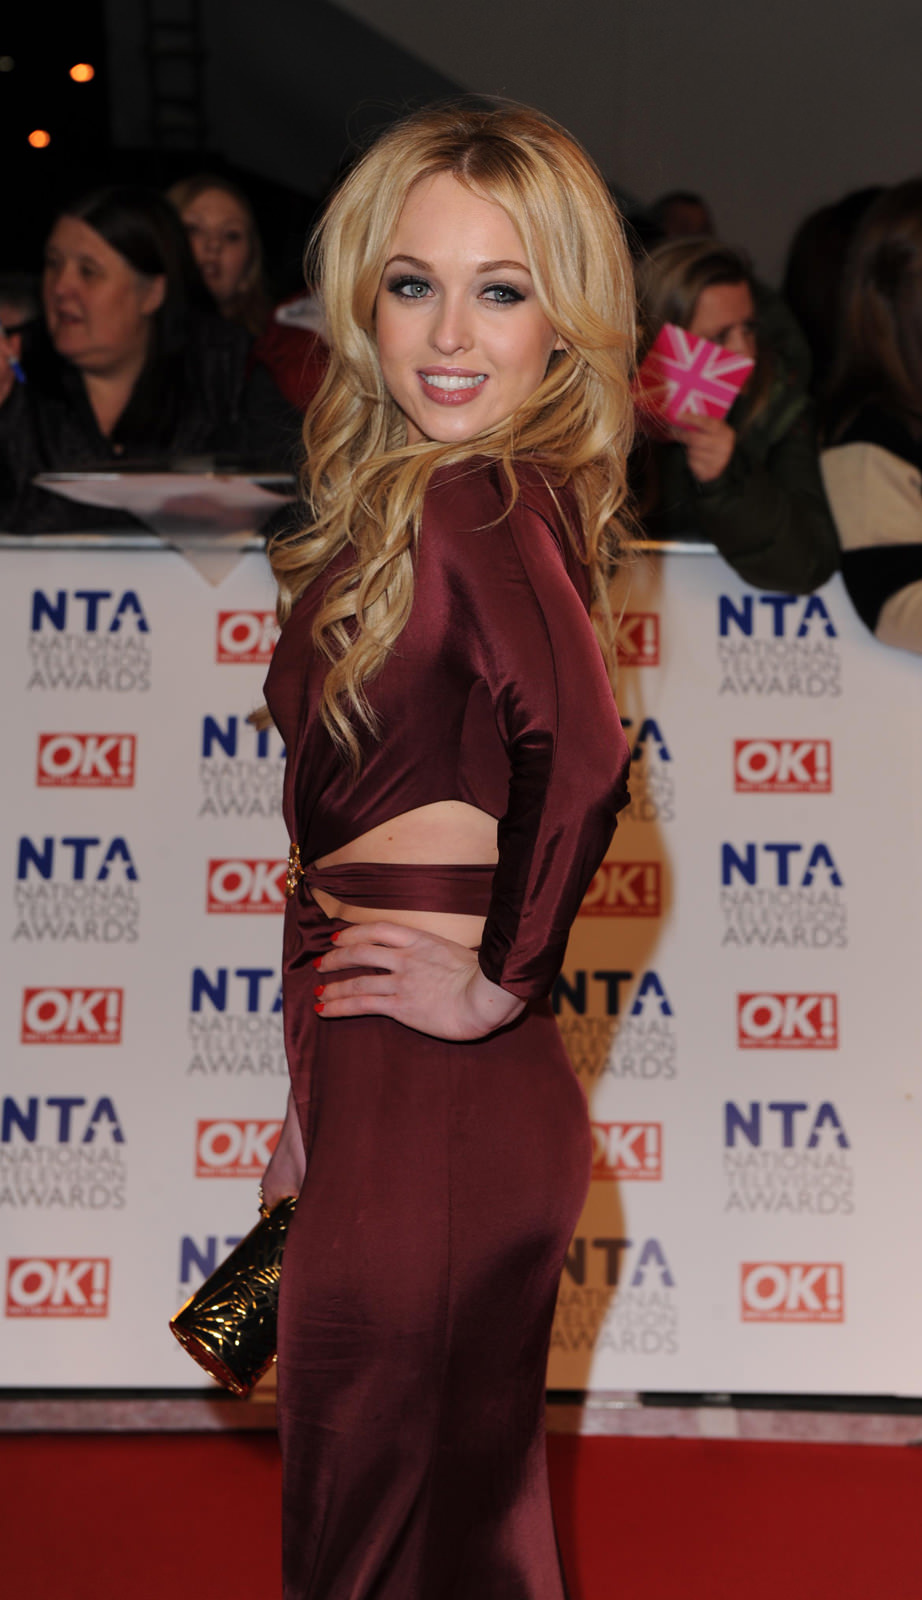 Jorgie Porter Photo Gallery